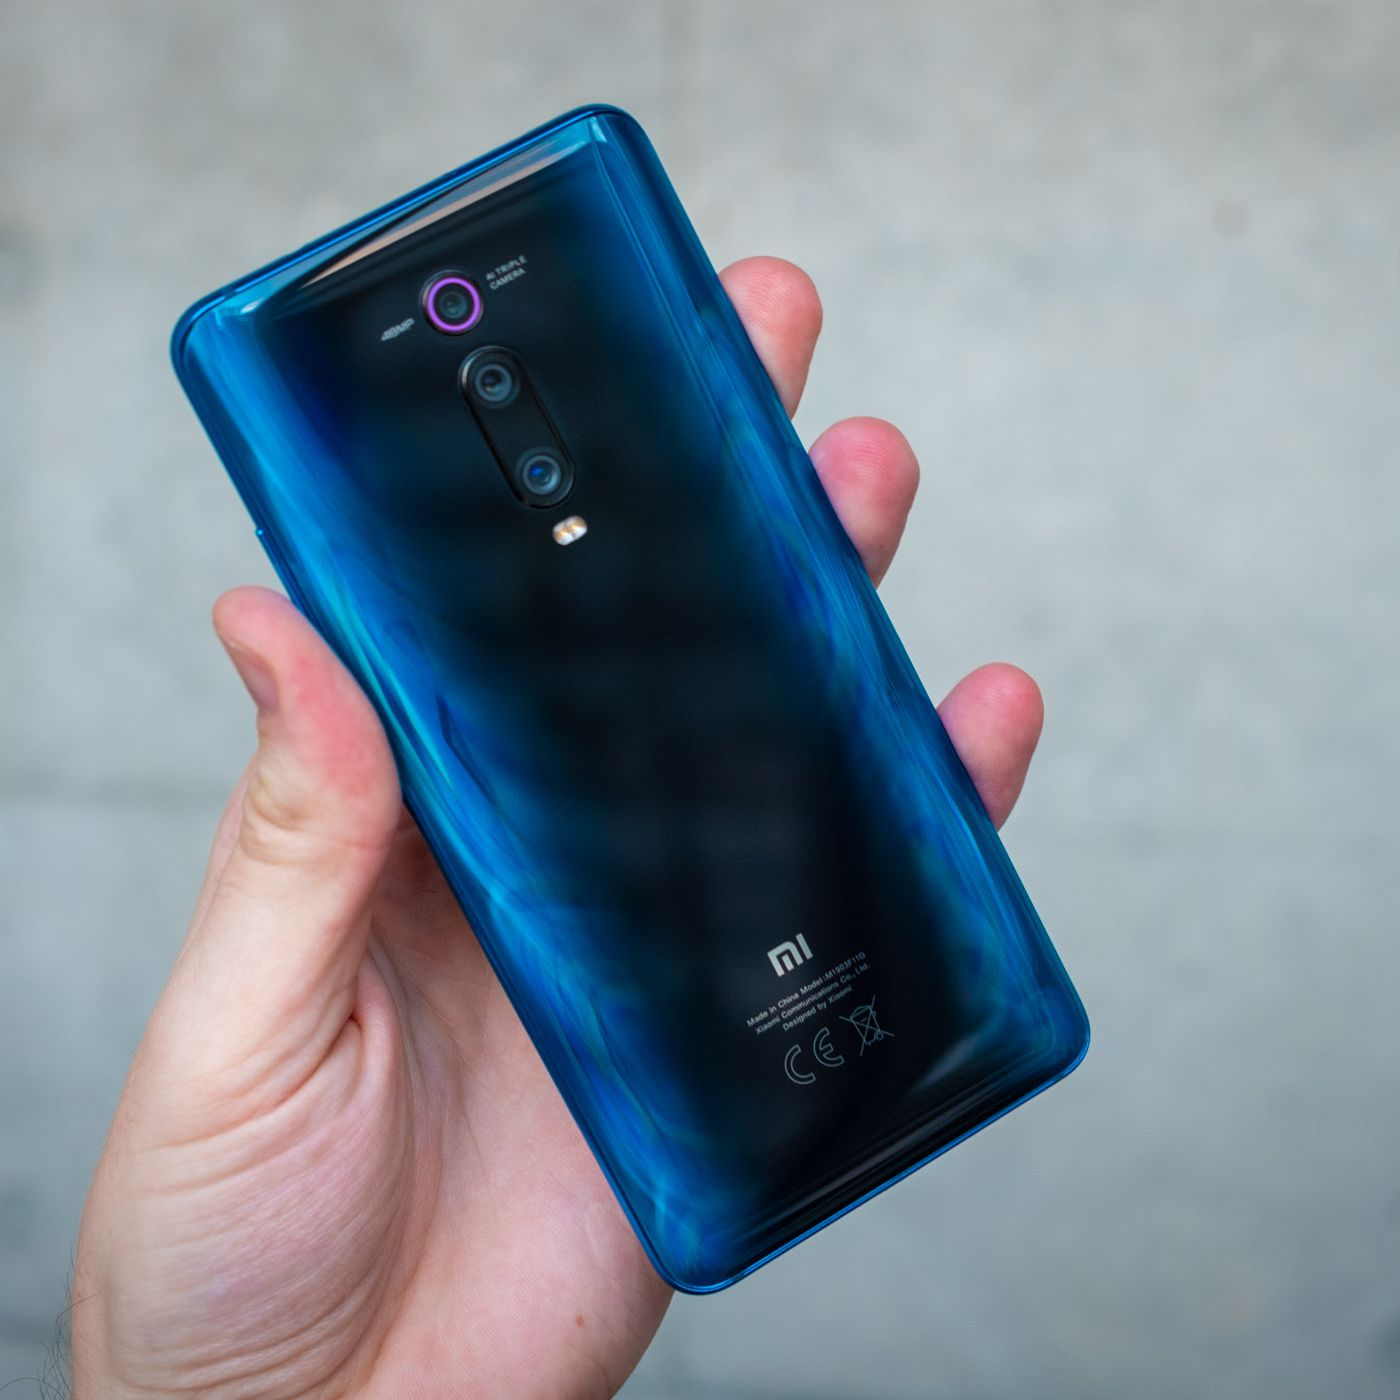 Design and build quality of the Xiaomi Mi 9